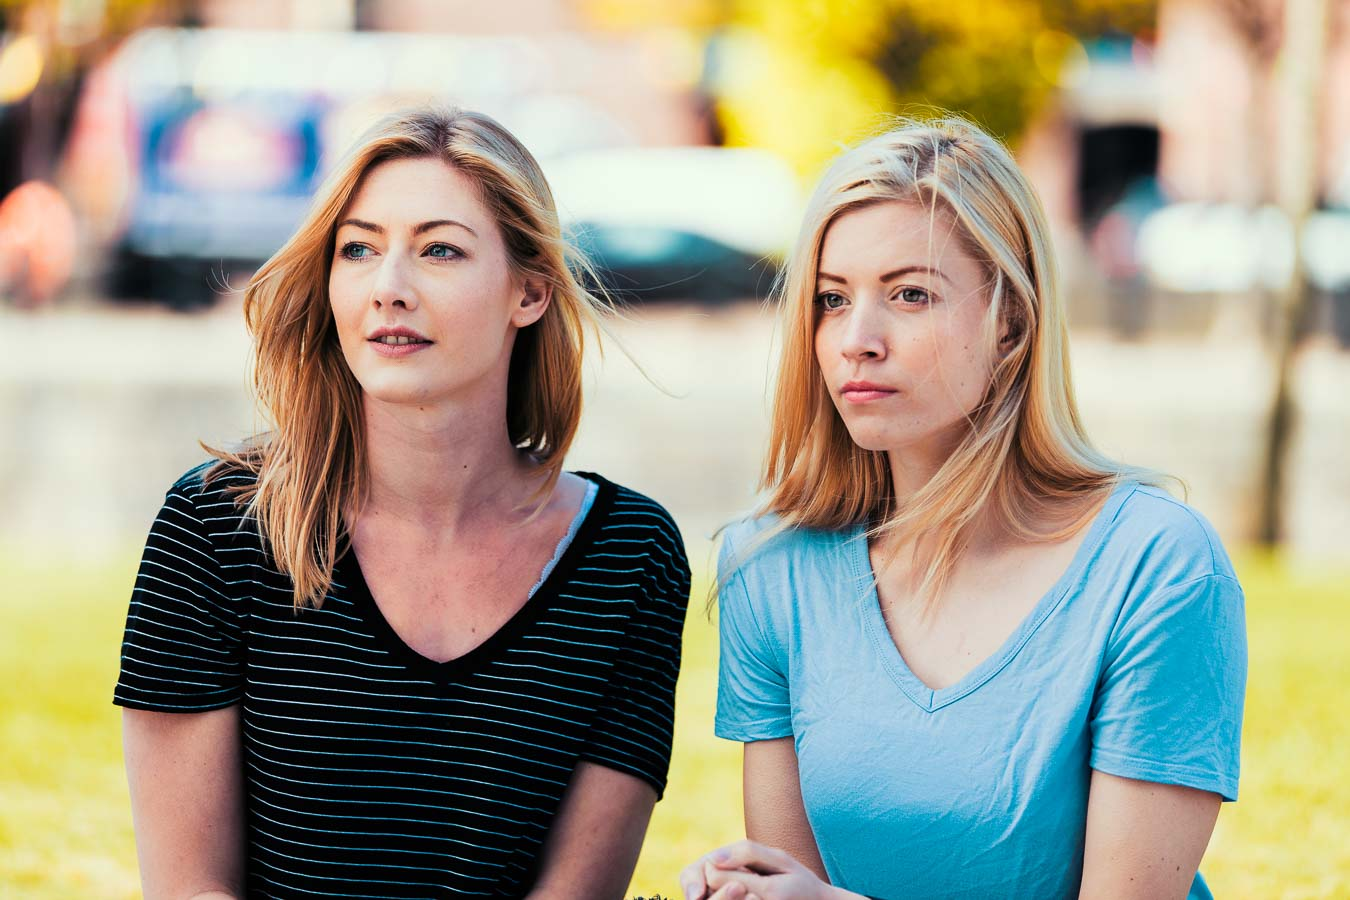 Two beautiful young women in casual clothes, with blond hair, look over to camera left with an out of focus urban background. The colours are of a cinematic quality